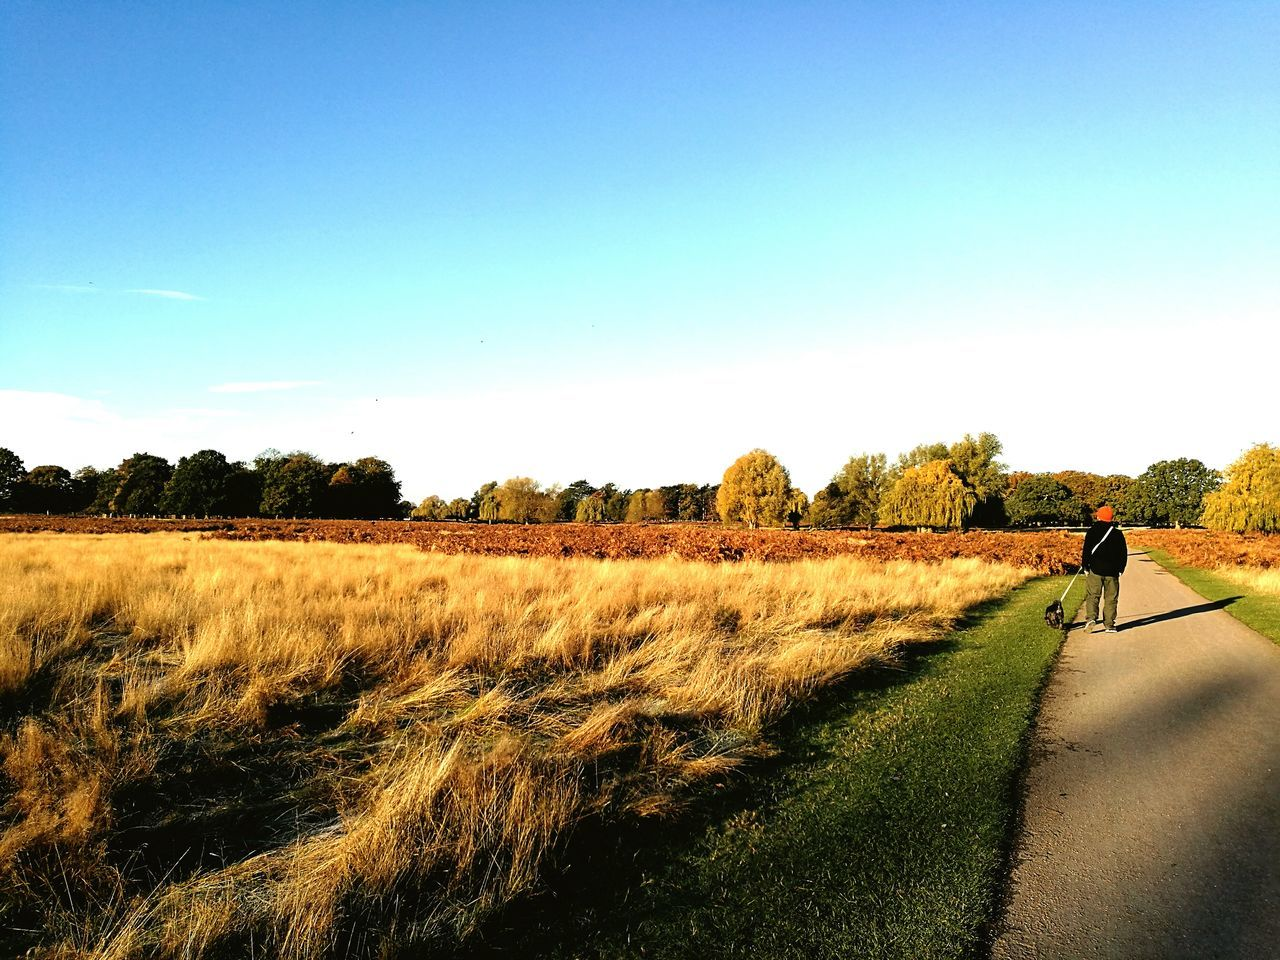 Sky Outdoors One Person Dog Walking Onemanandhisdog Autumn Colors Bushy Park Fall Expanse Autumnlight Park Royalpark England Surrey Surrey Countryside London Leicacamera Huawei P9 Leica Leica Lens HuaweiP9 Huaweiphotography